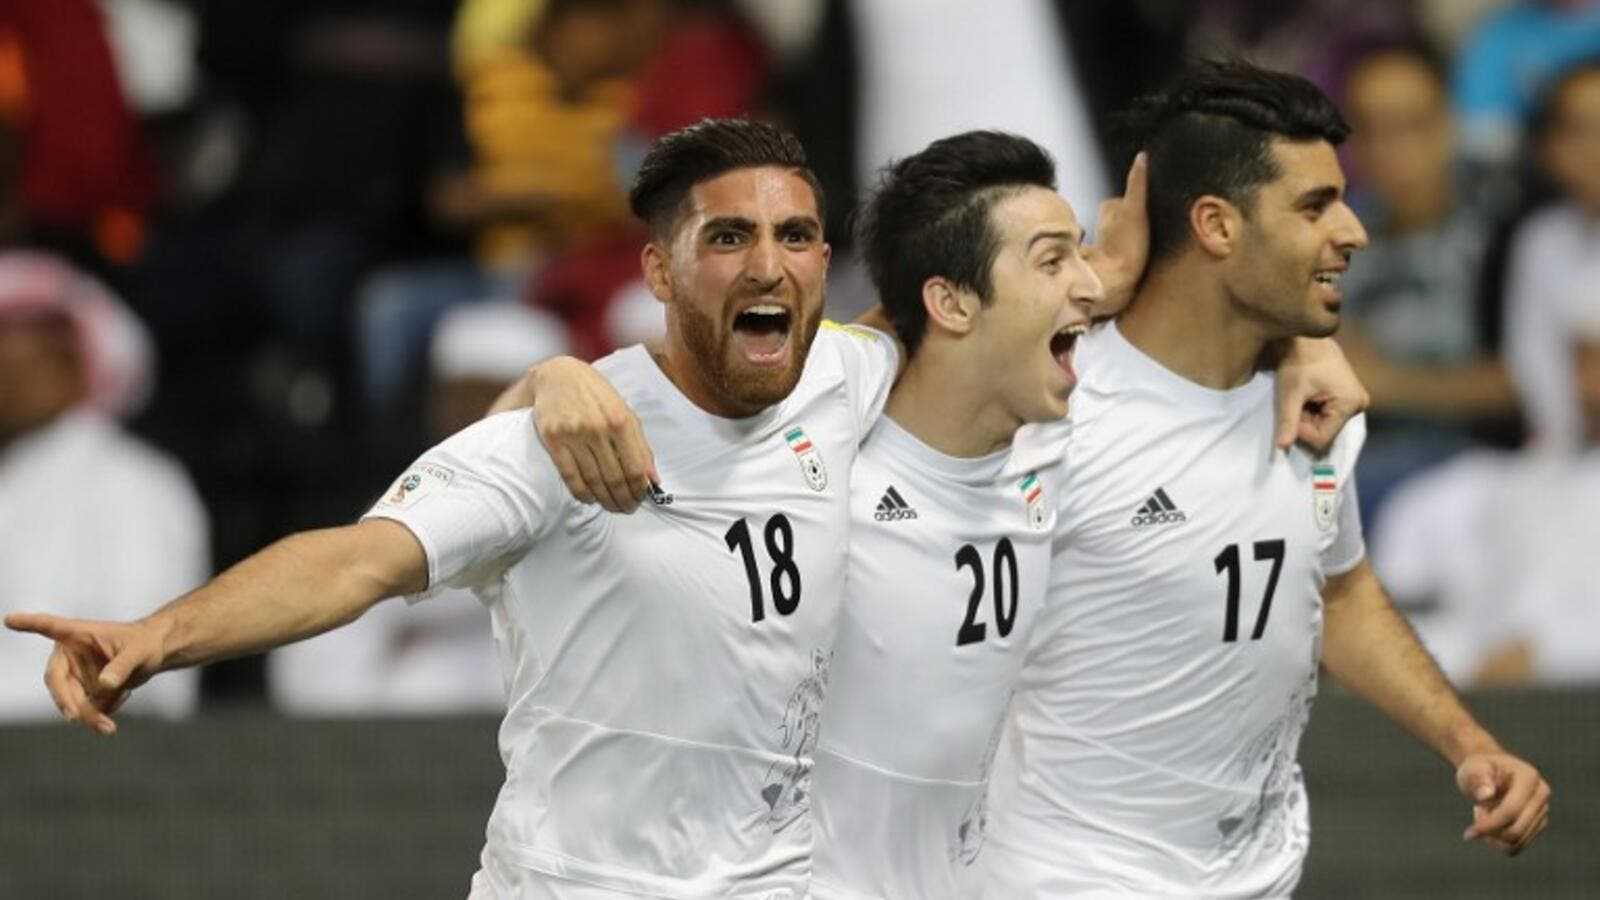 Qatar's World Cup hopes suffer big blow as Iran win